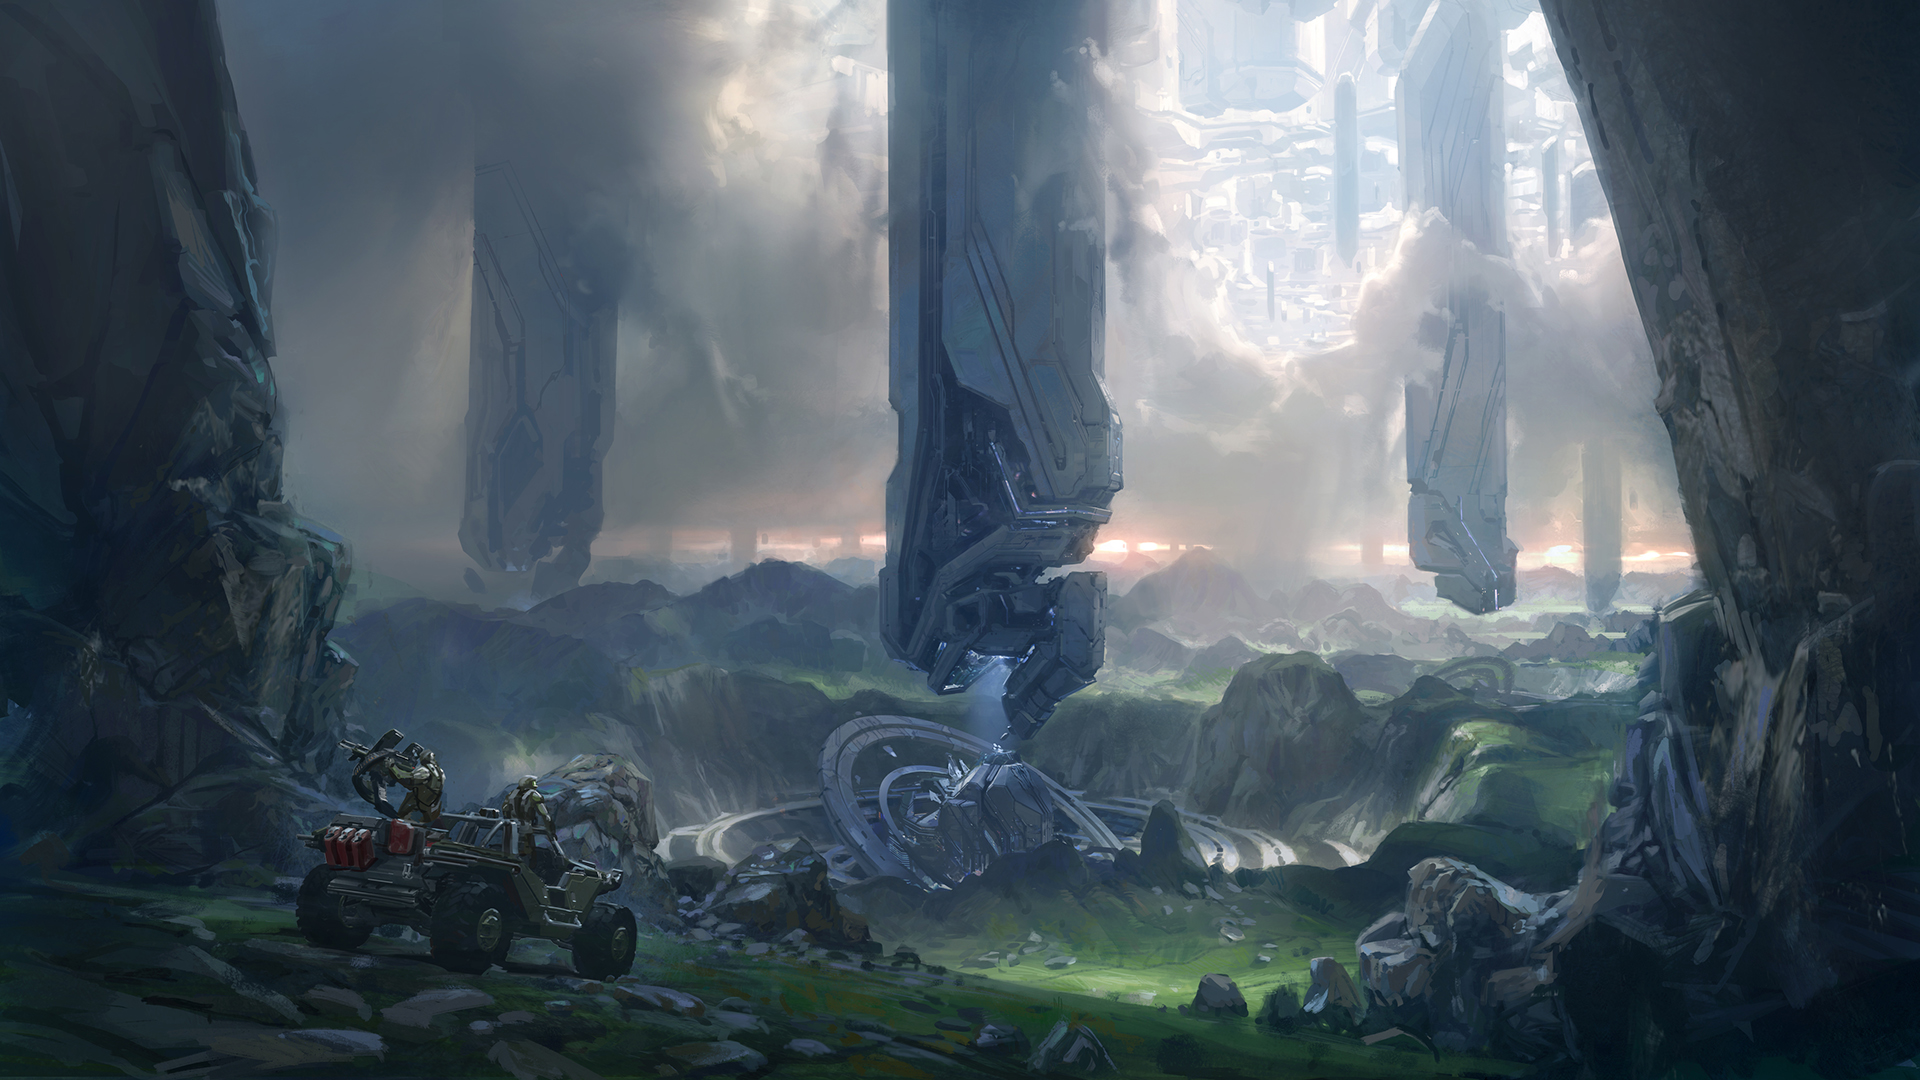 Halo 4 Video Games Cortana Artwork - WallDevil